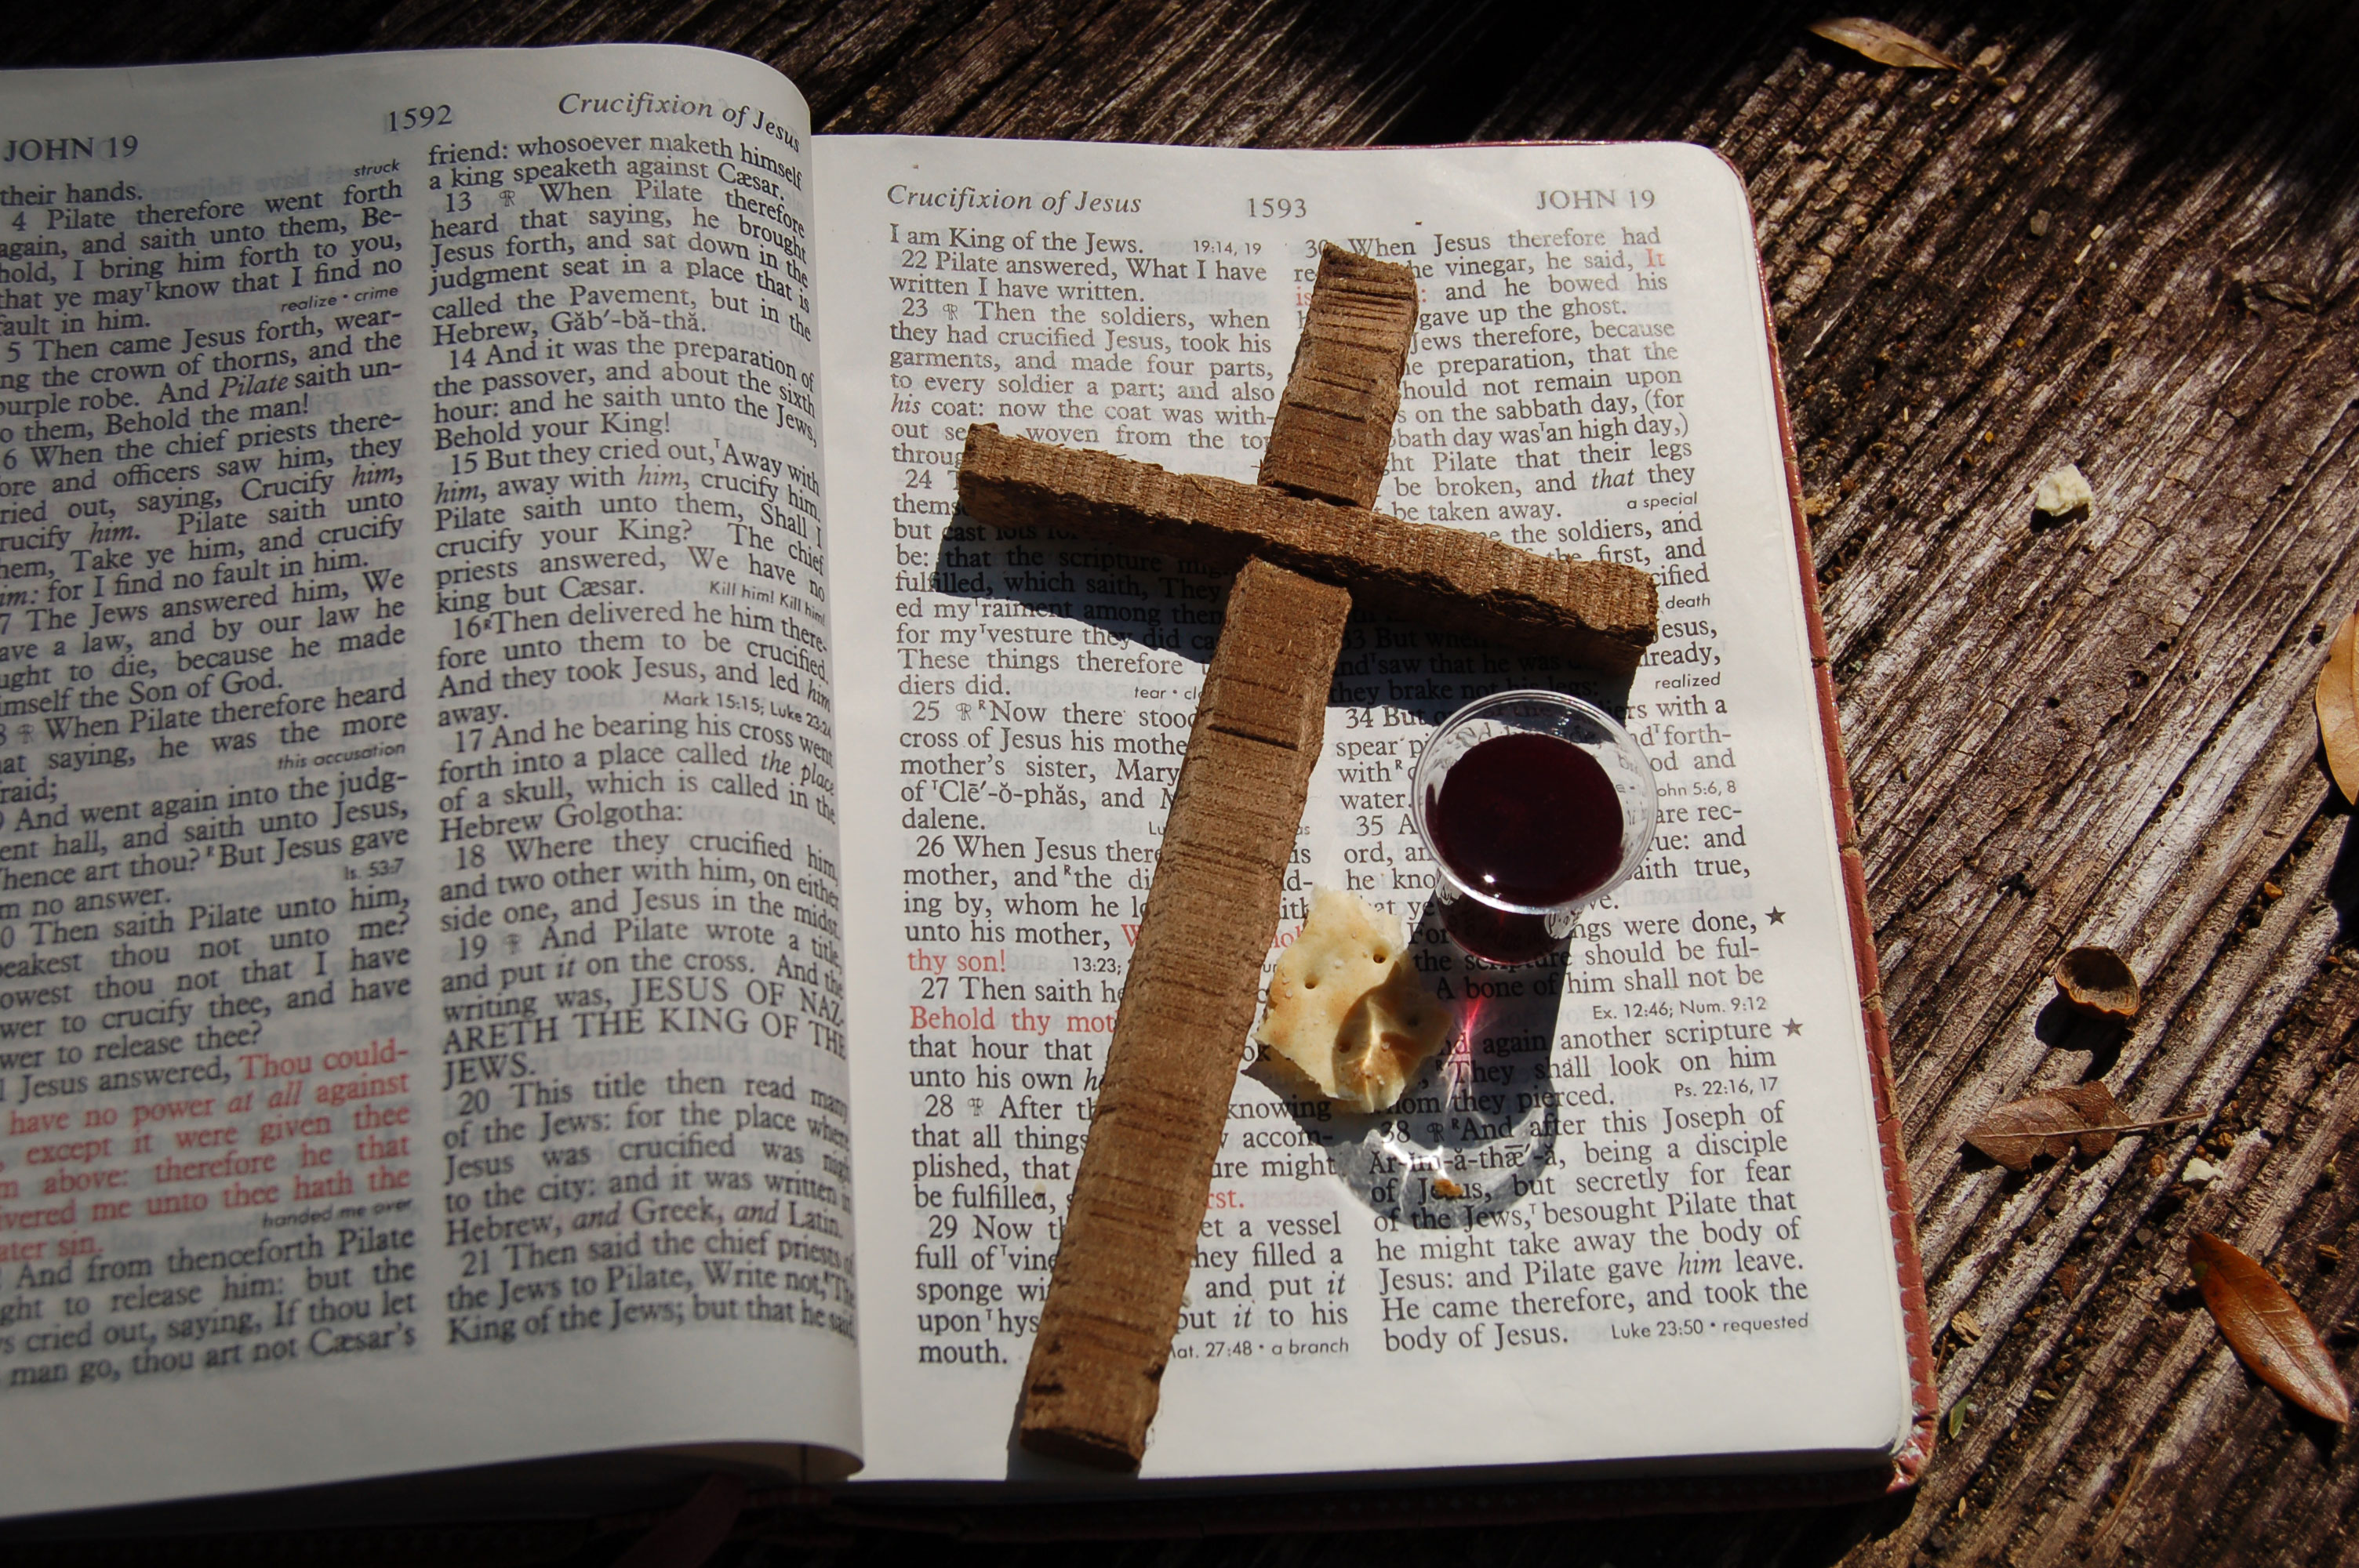 Christian Stock Photos by Linda Bateman - Wood Cross on Open Bible with Communion Emblems